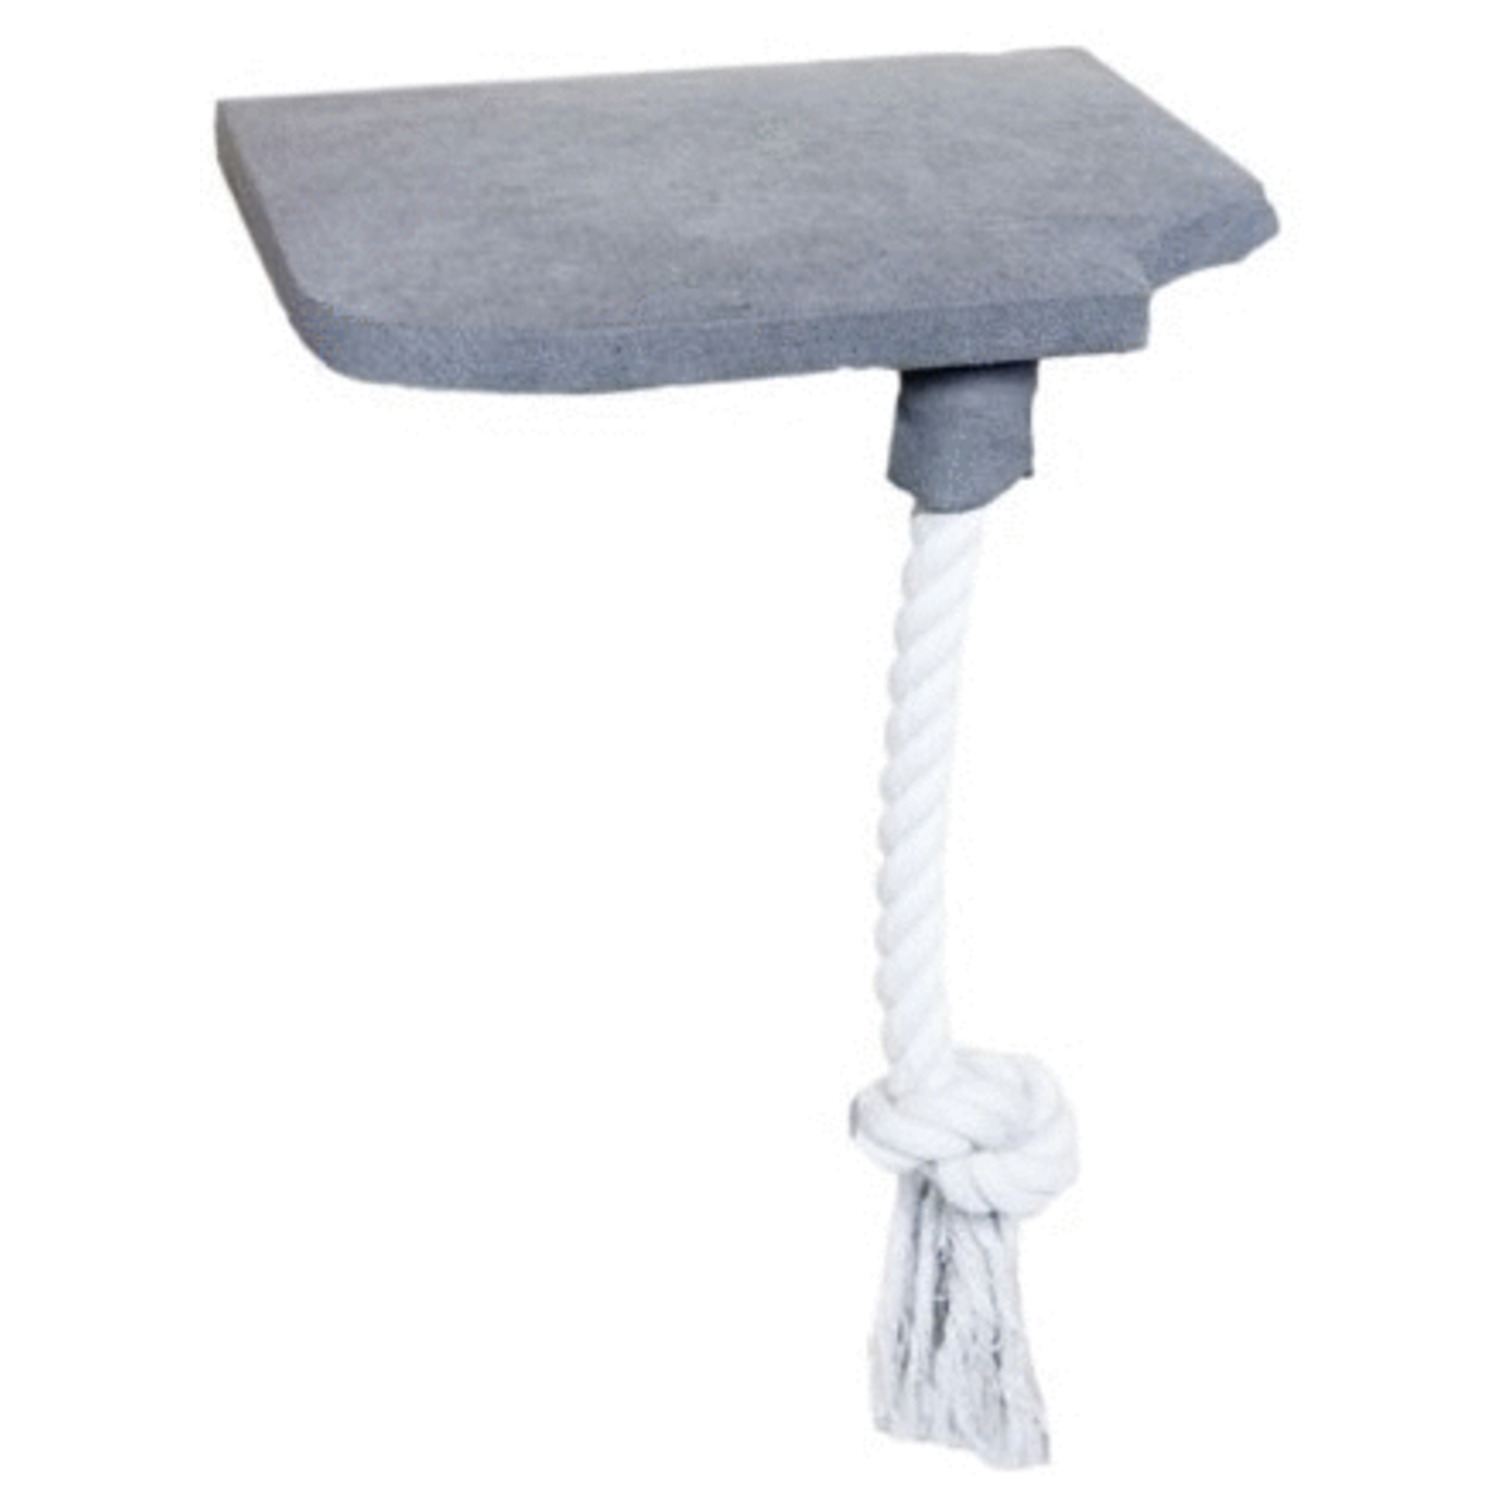 All-For-Paws-Skywalk-Step-In-Platform-With-Rope-Wandkrabpaal-32x8x28-cm-Grijs